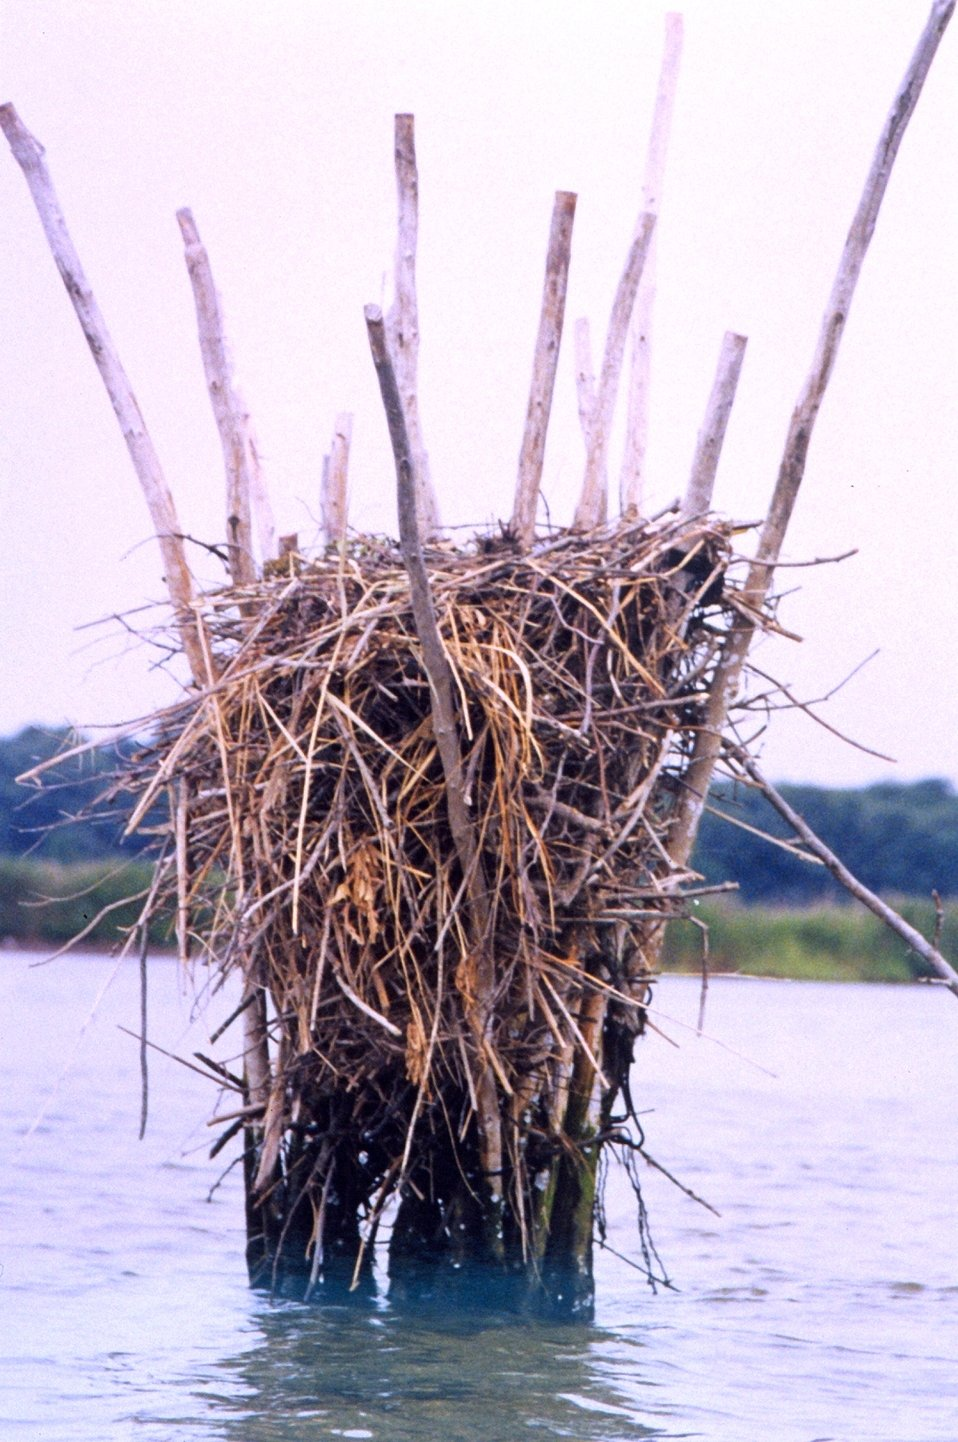 Closeup of an osprey nest built amid pound net posts.